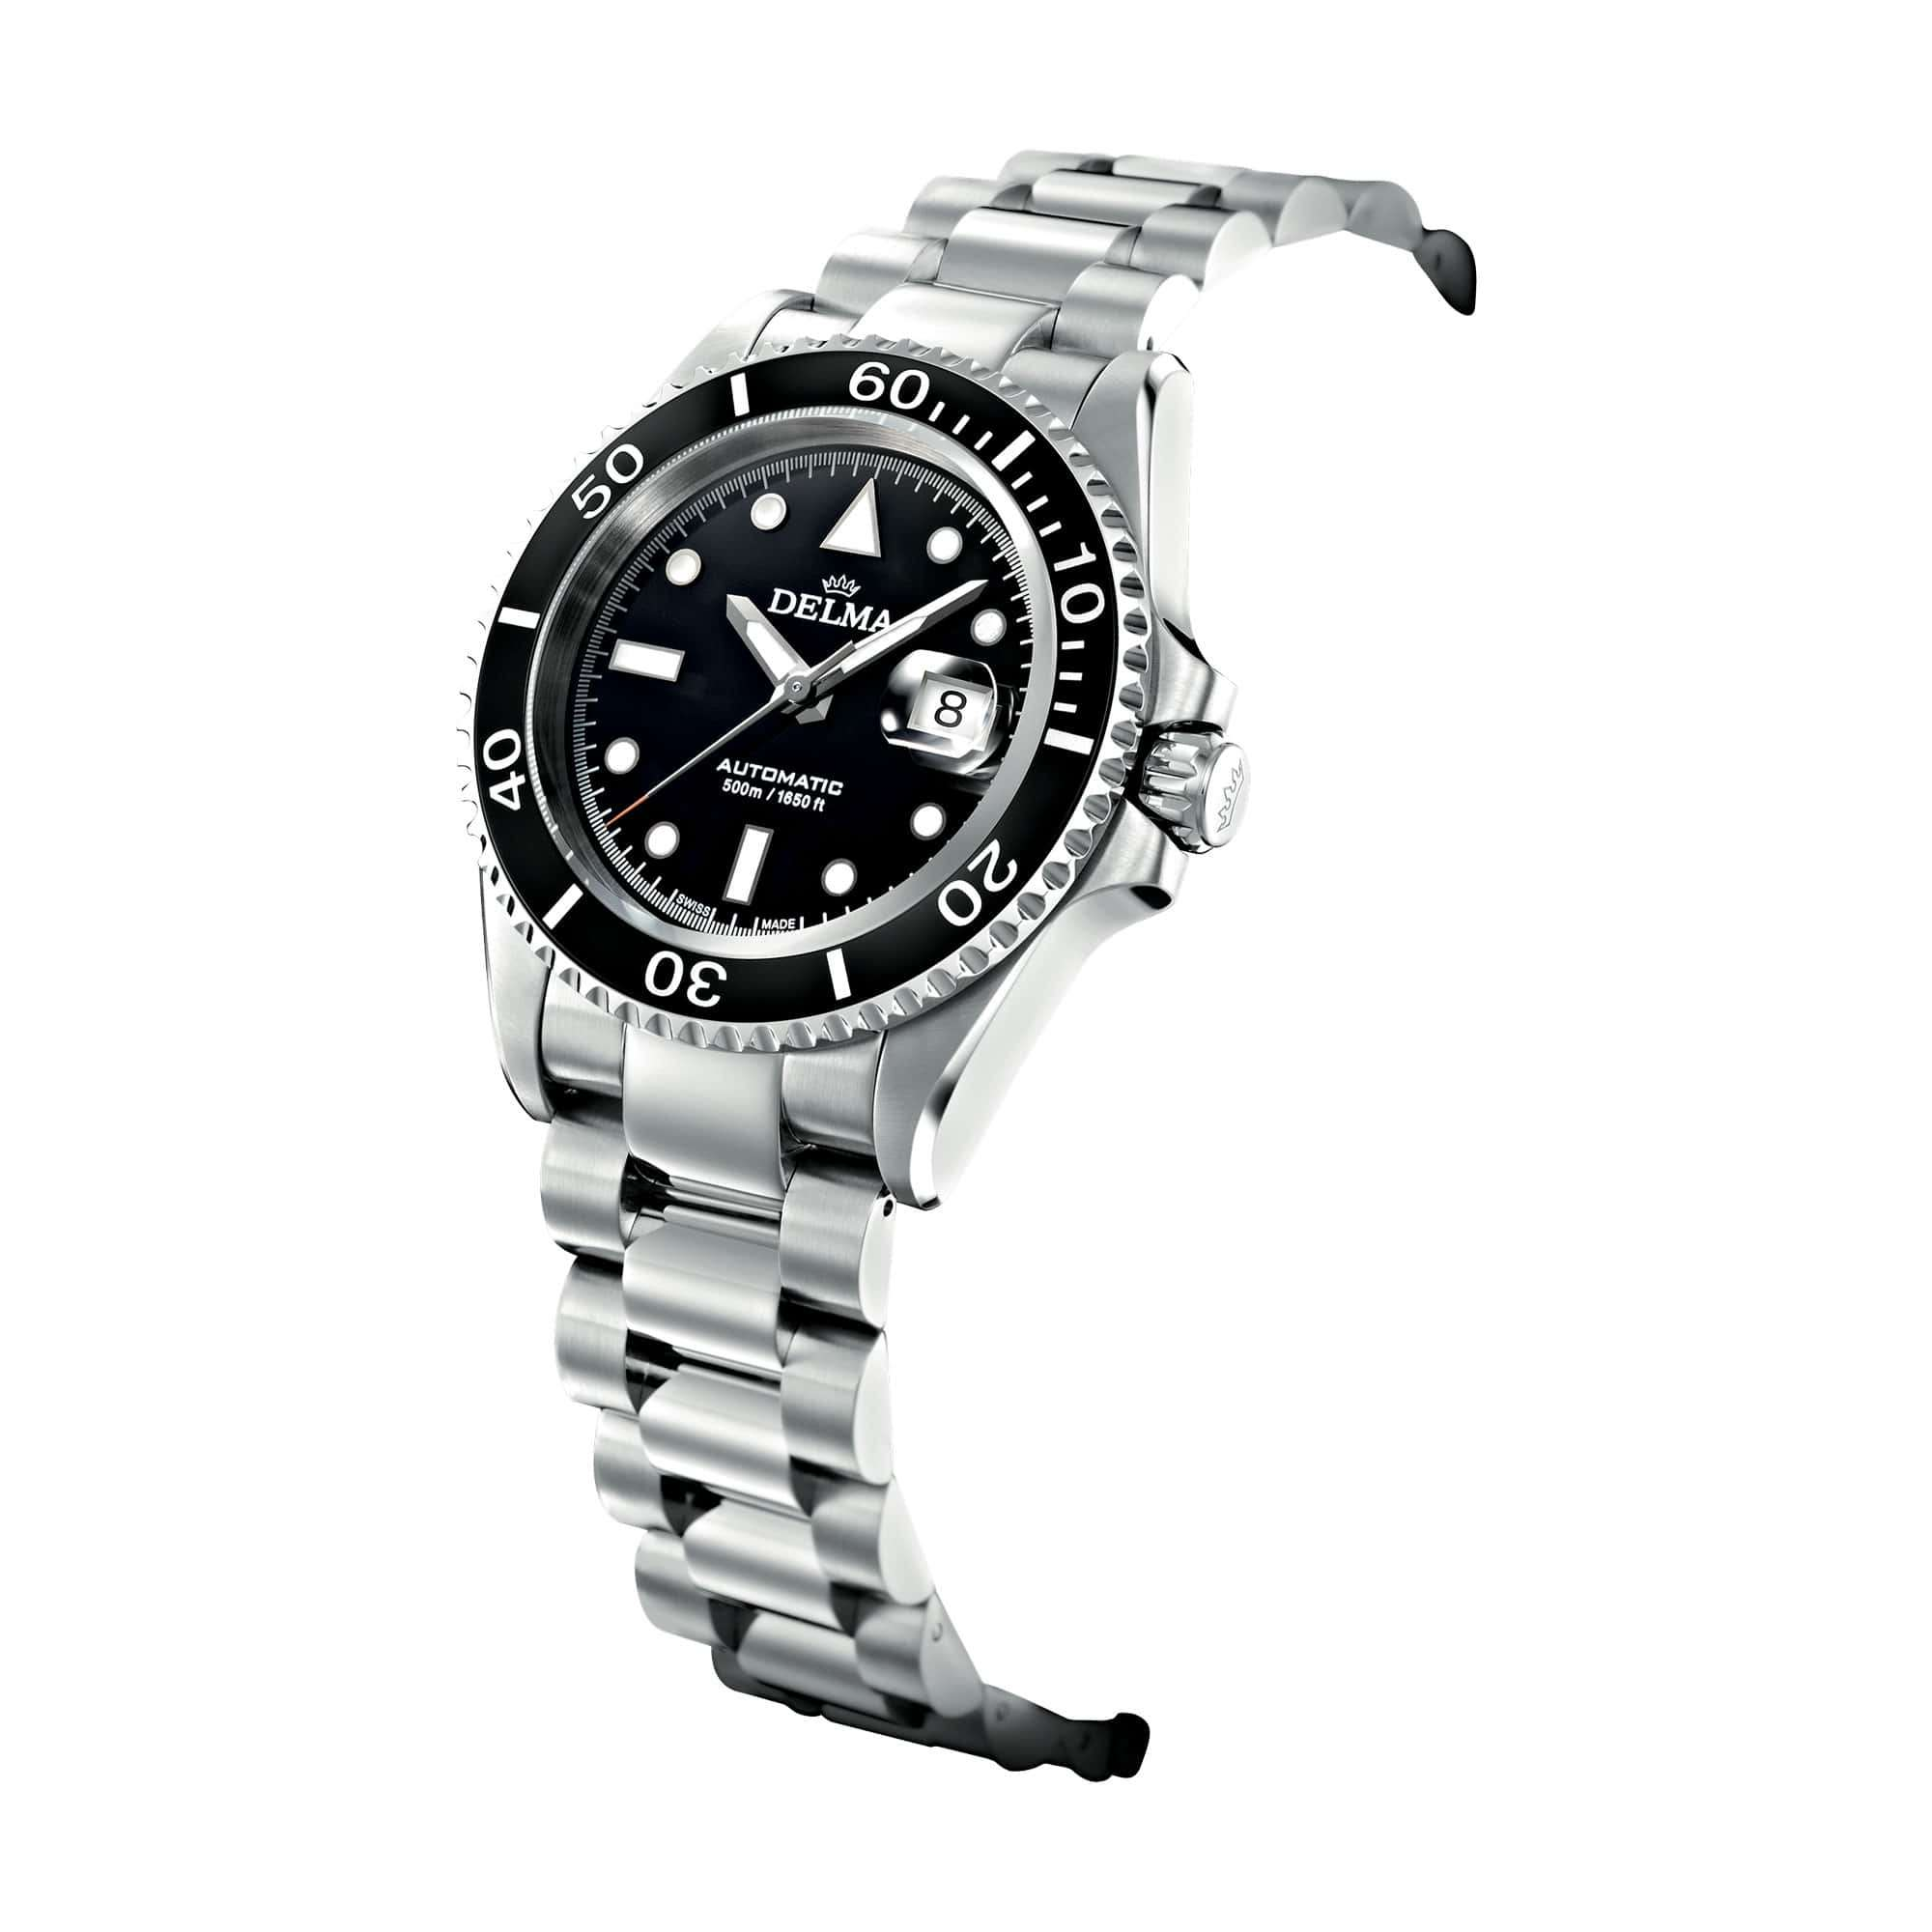 Delma Diver Commodore Automatic Stainless Steel 41701.690.6.031 – Swiss Time